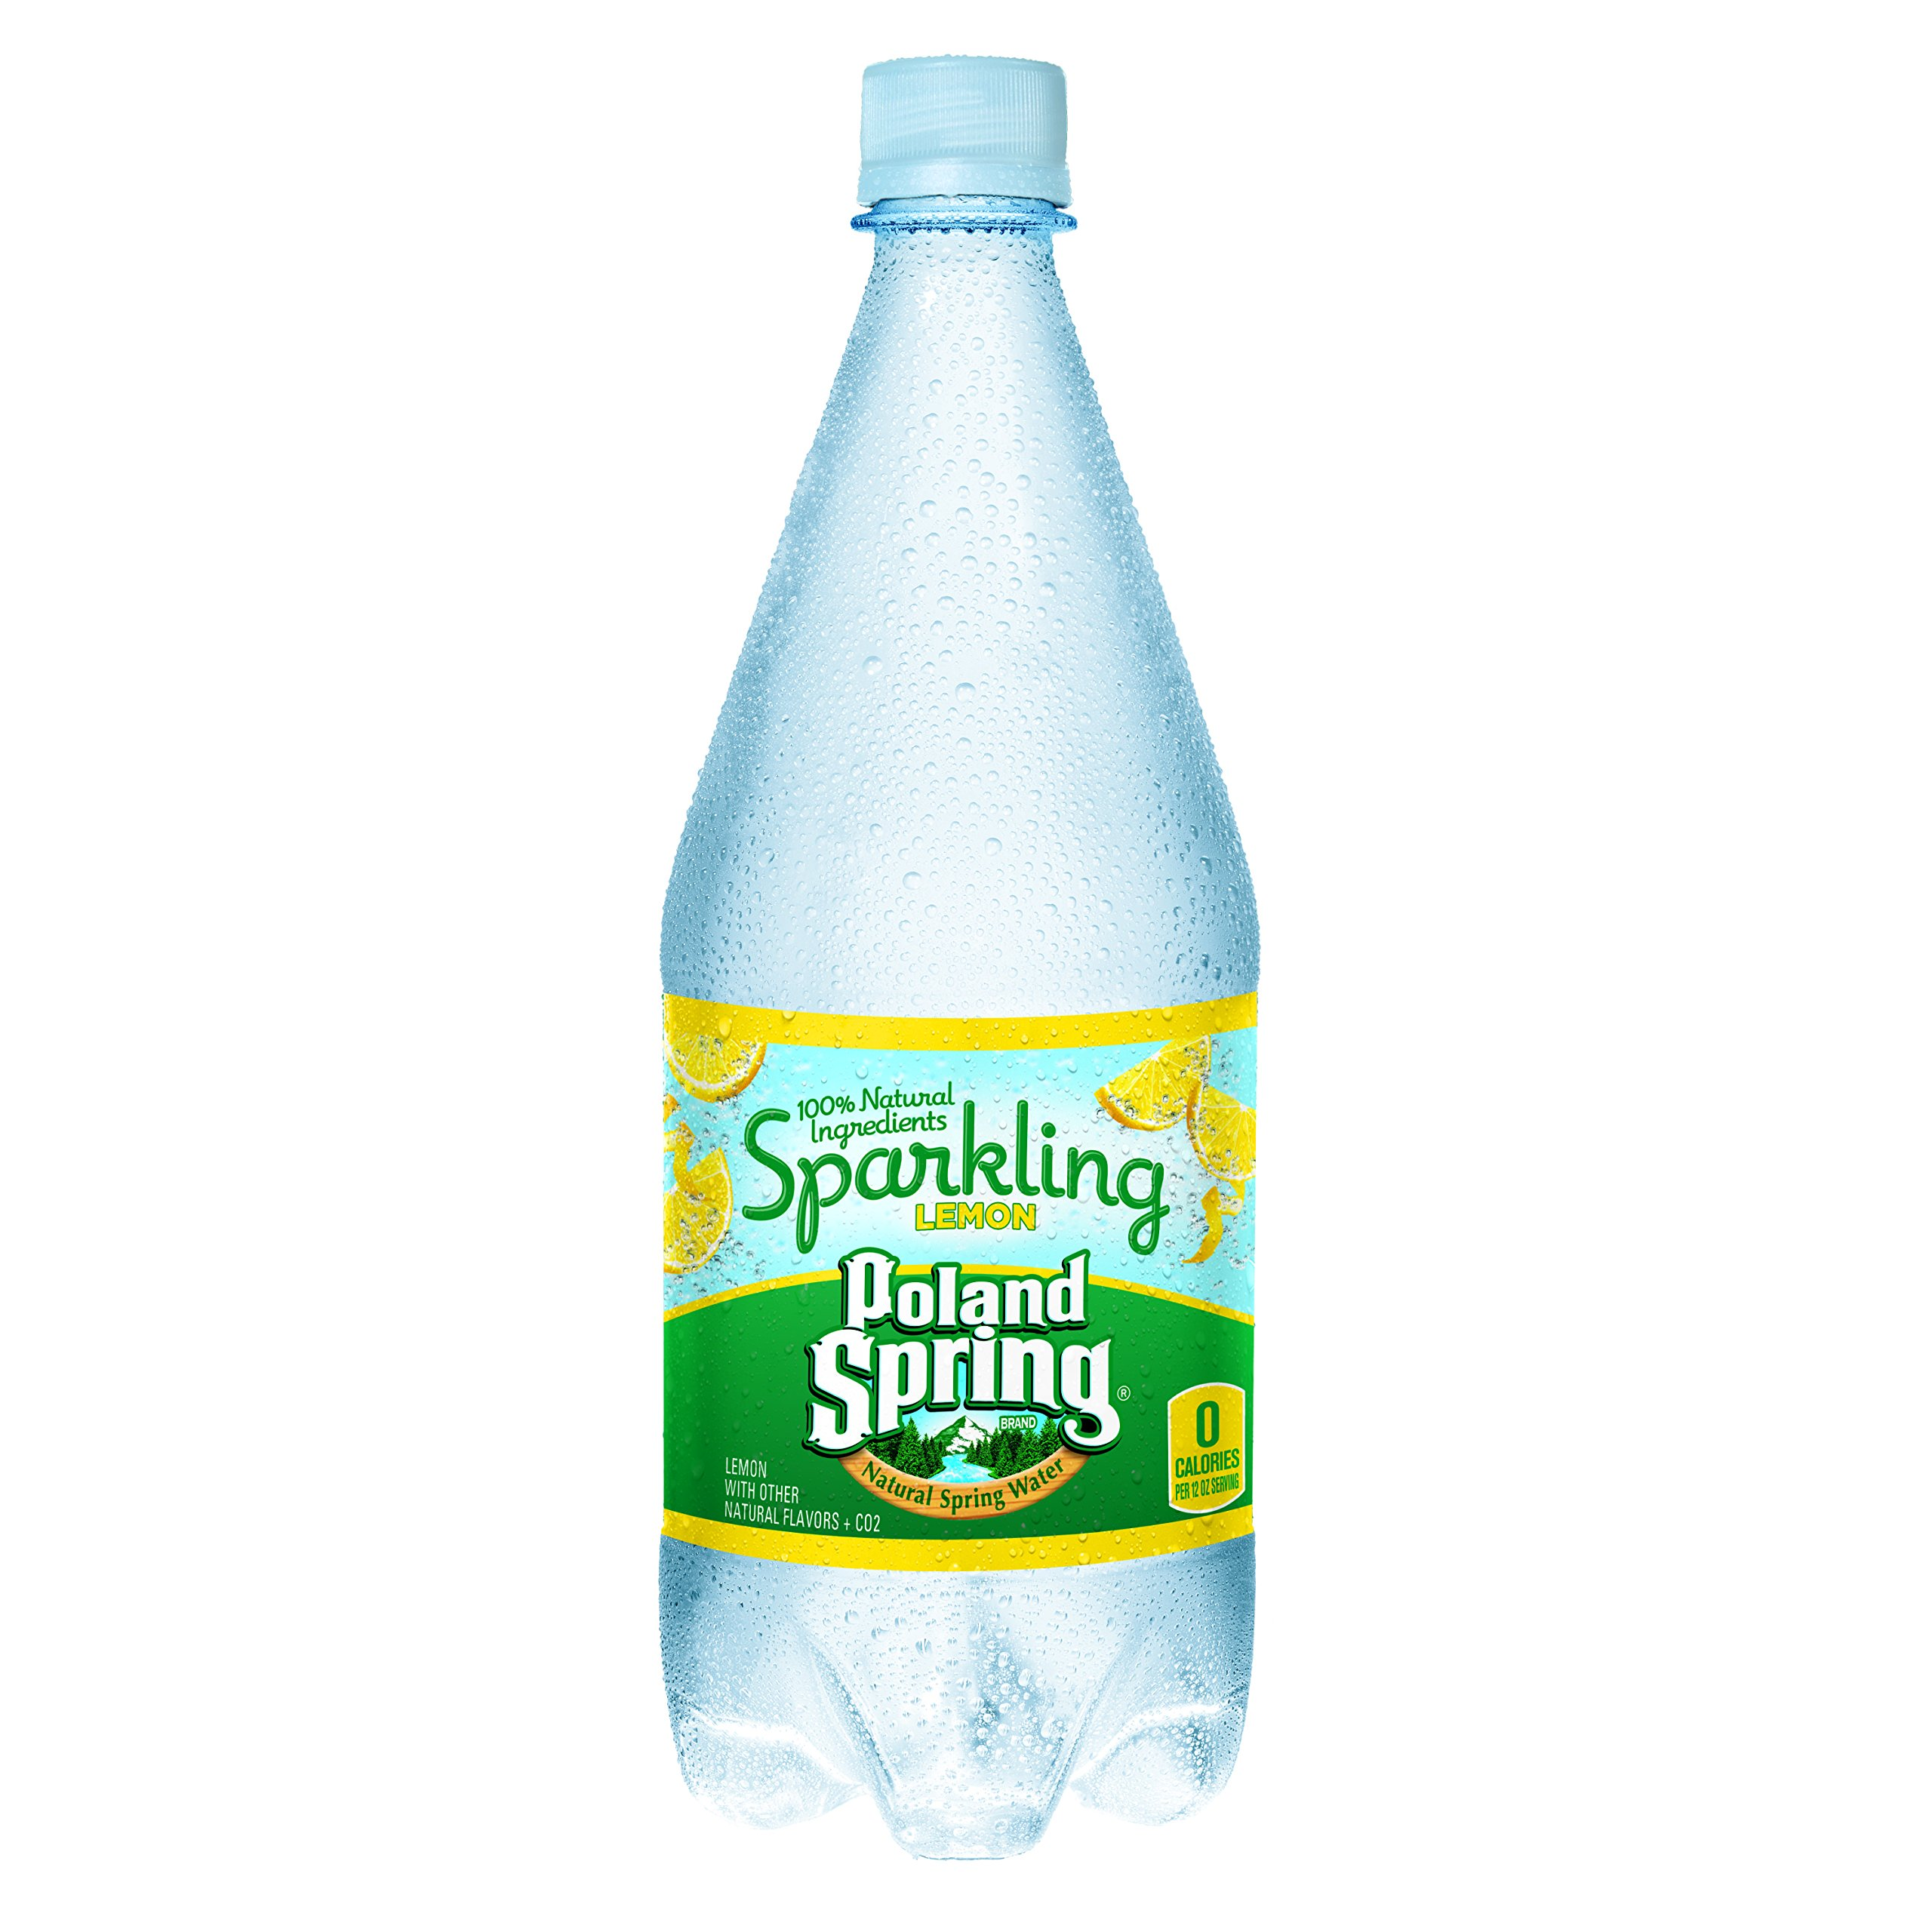 Poland Springs Sparkling Water, Lemon, 1L